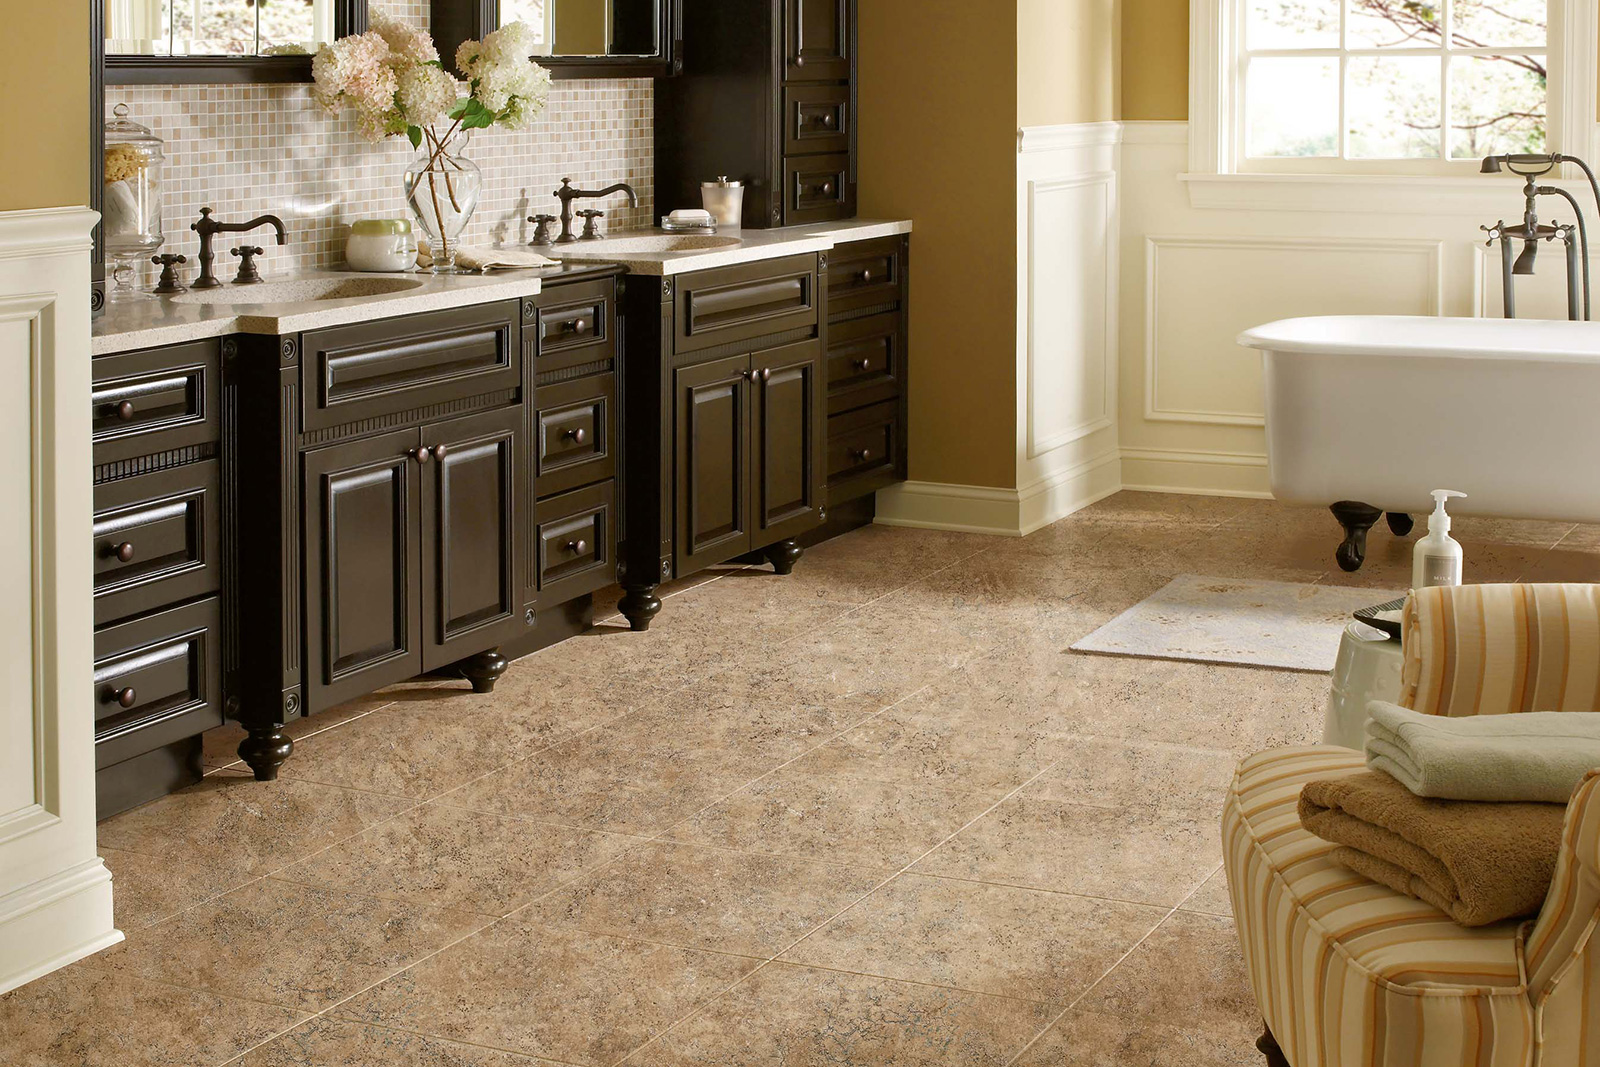 Bathroom flooring bathroom flooring options houselogic bathrooms dailygadgetfo Gallery